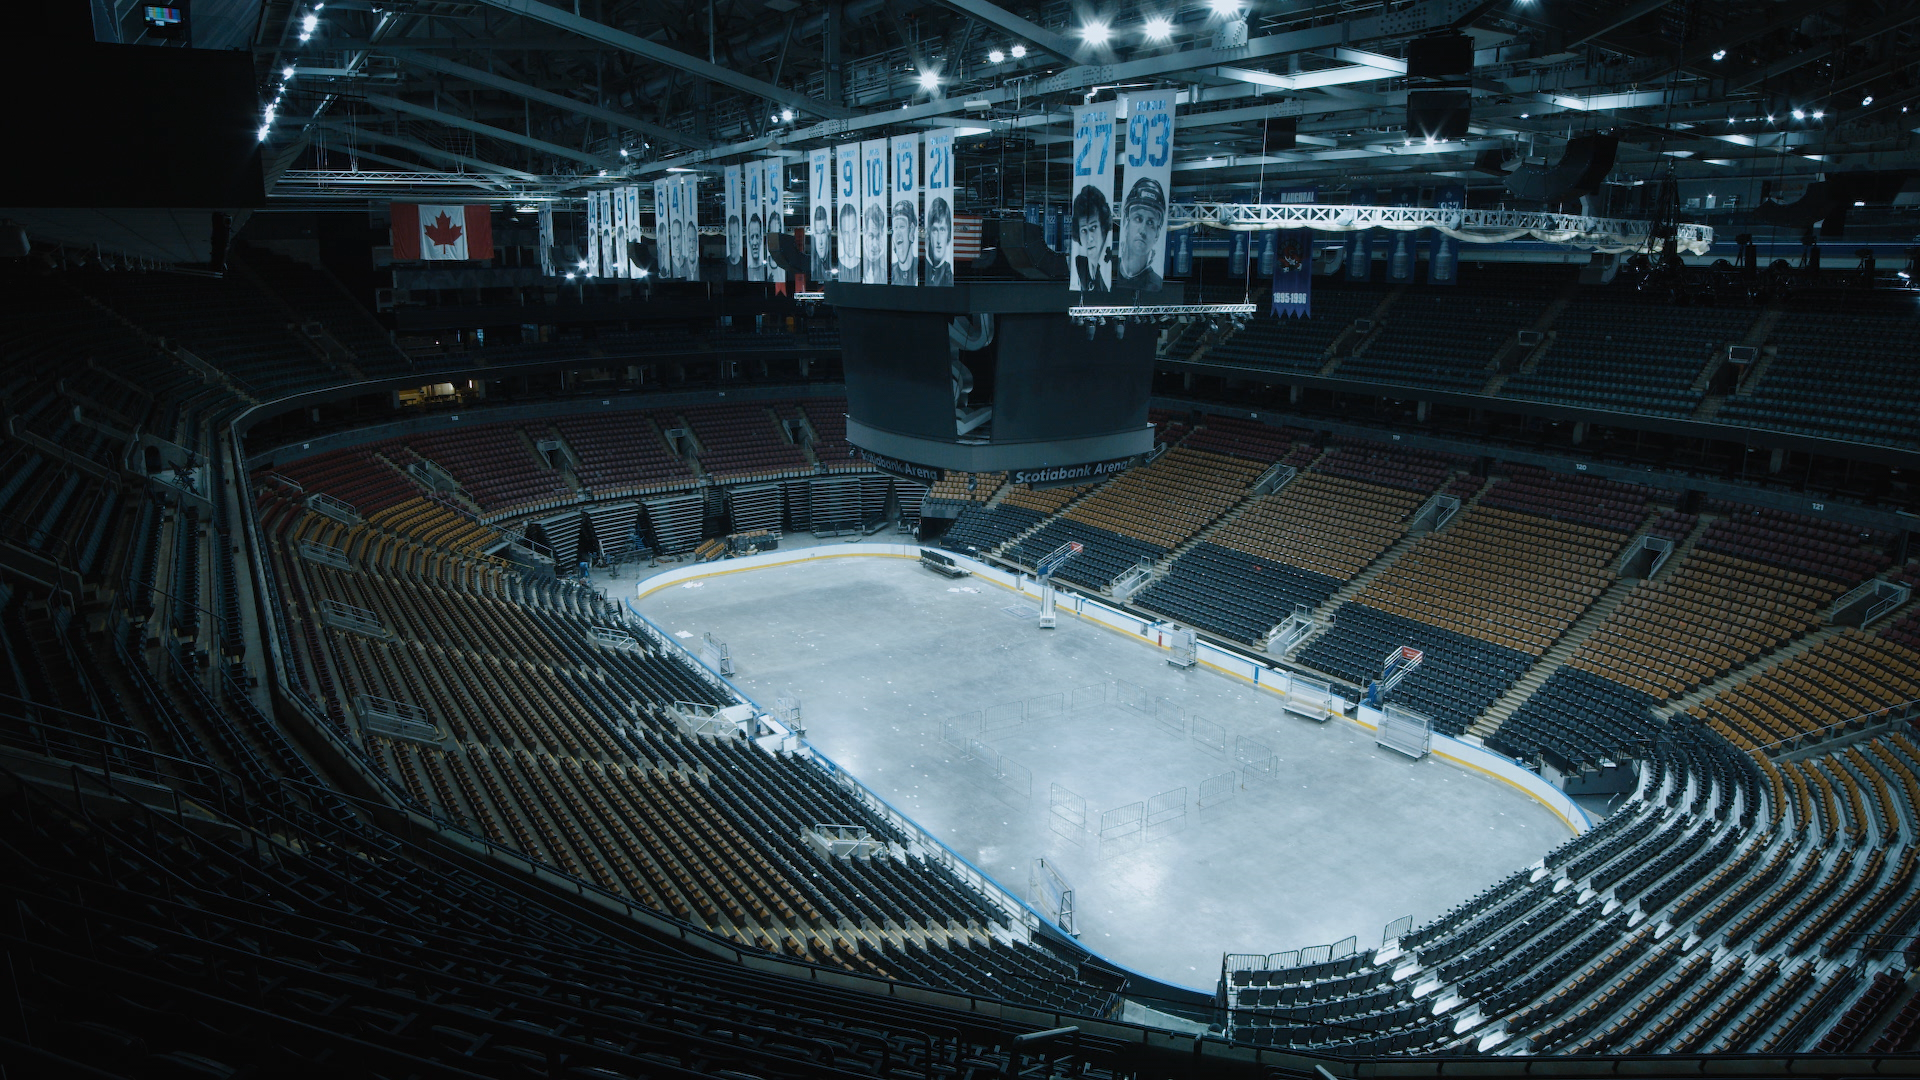 A wide-angle shot of the Scotiabank Arena, home to the NBA's Toronto Raptors and NHL's Toronto Maple Leafs.